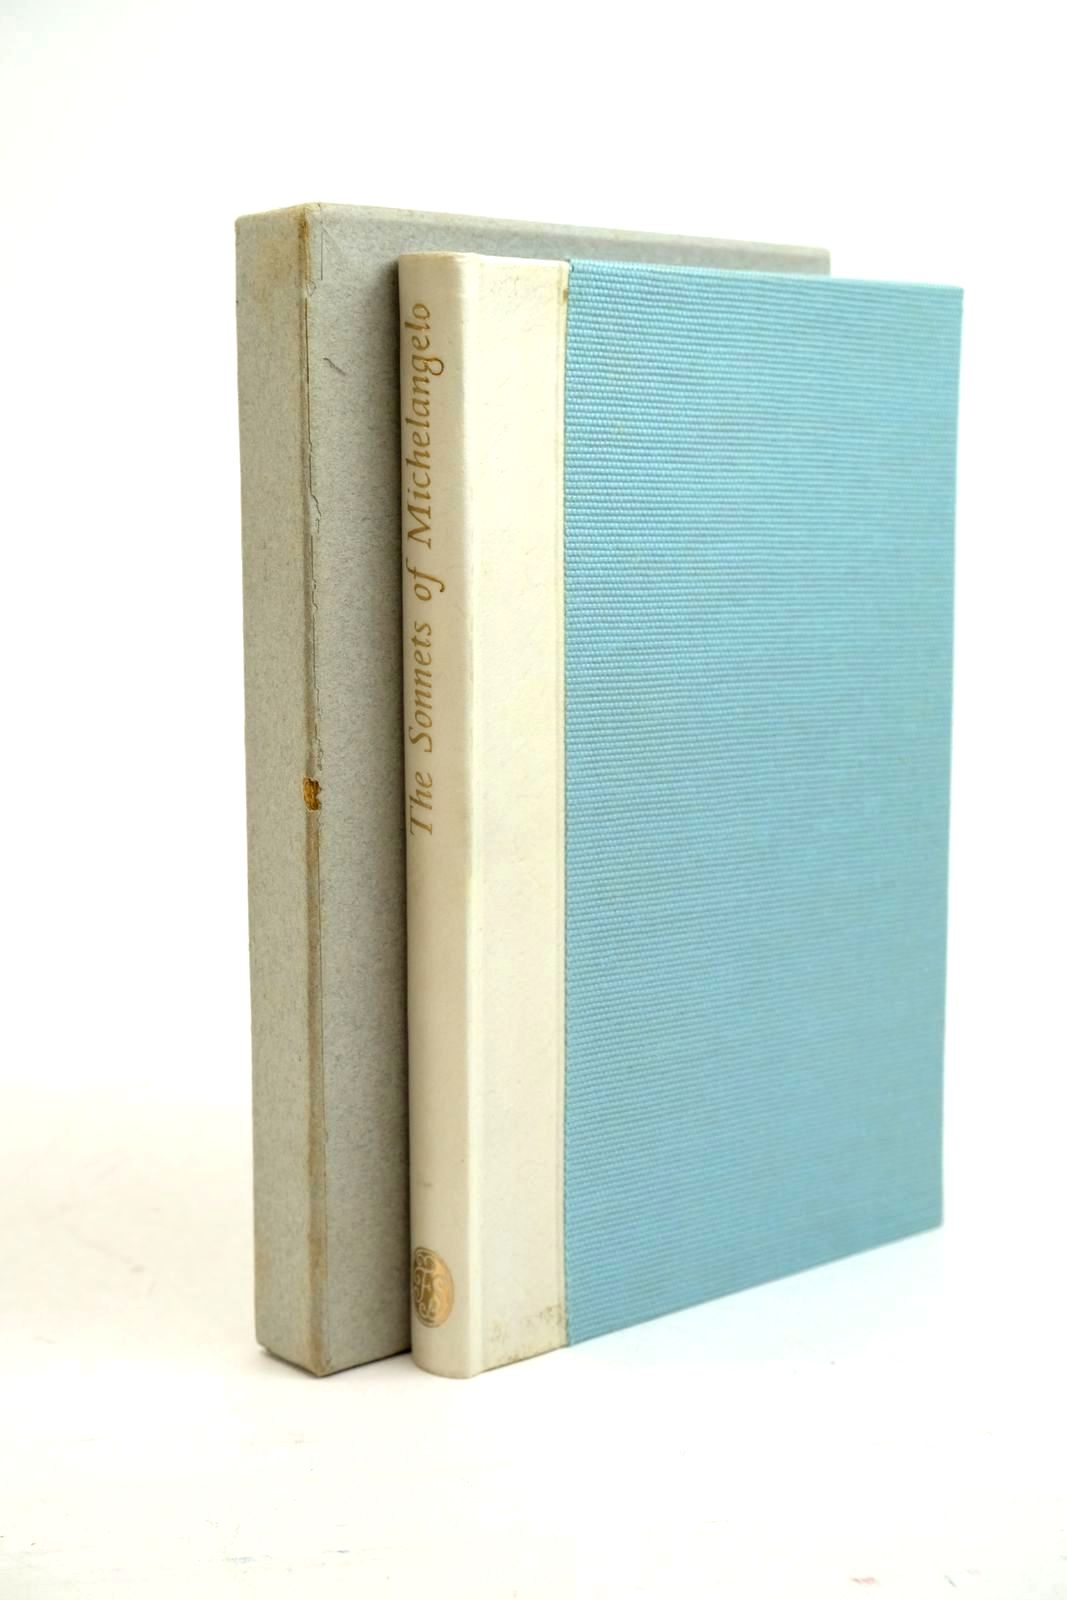 Photo of THE SONNETS OF MICHELANGELO written by Michelangelo,  Jennings, Elizabeth Ayrton, Michael illustrated by Michelangelo,  published by Folio Society (STOCK CODE: 1321336)  for sale by Stella & Rose's Books